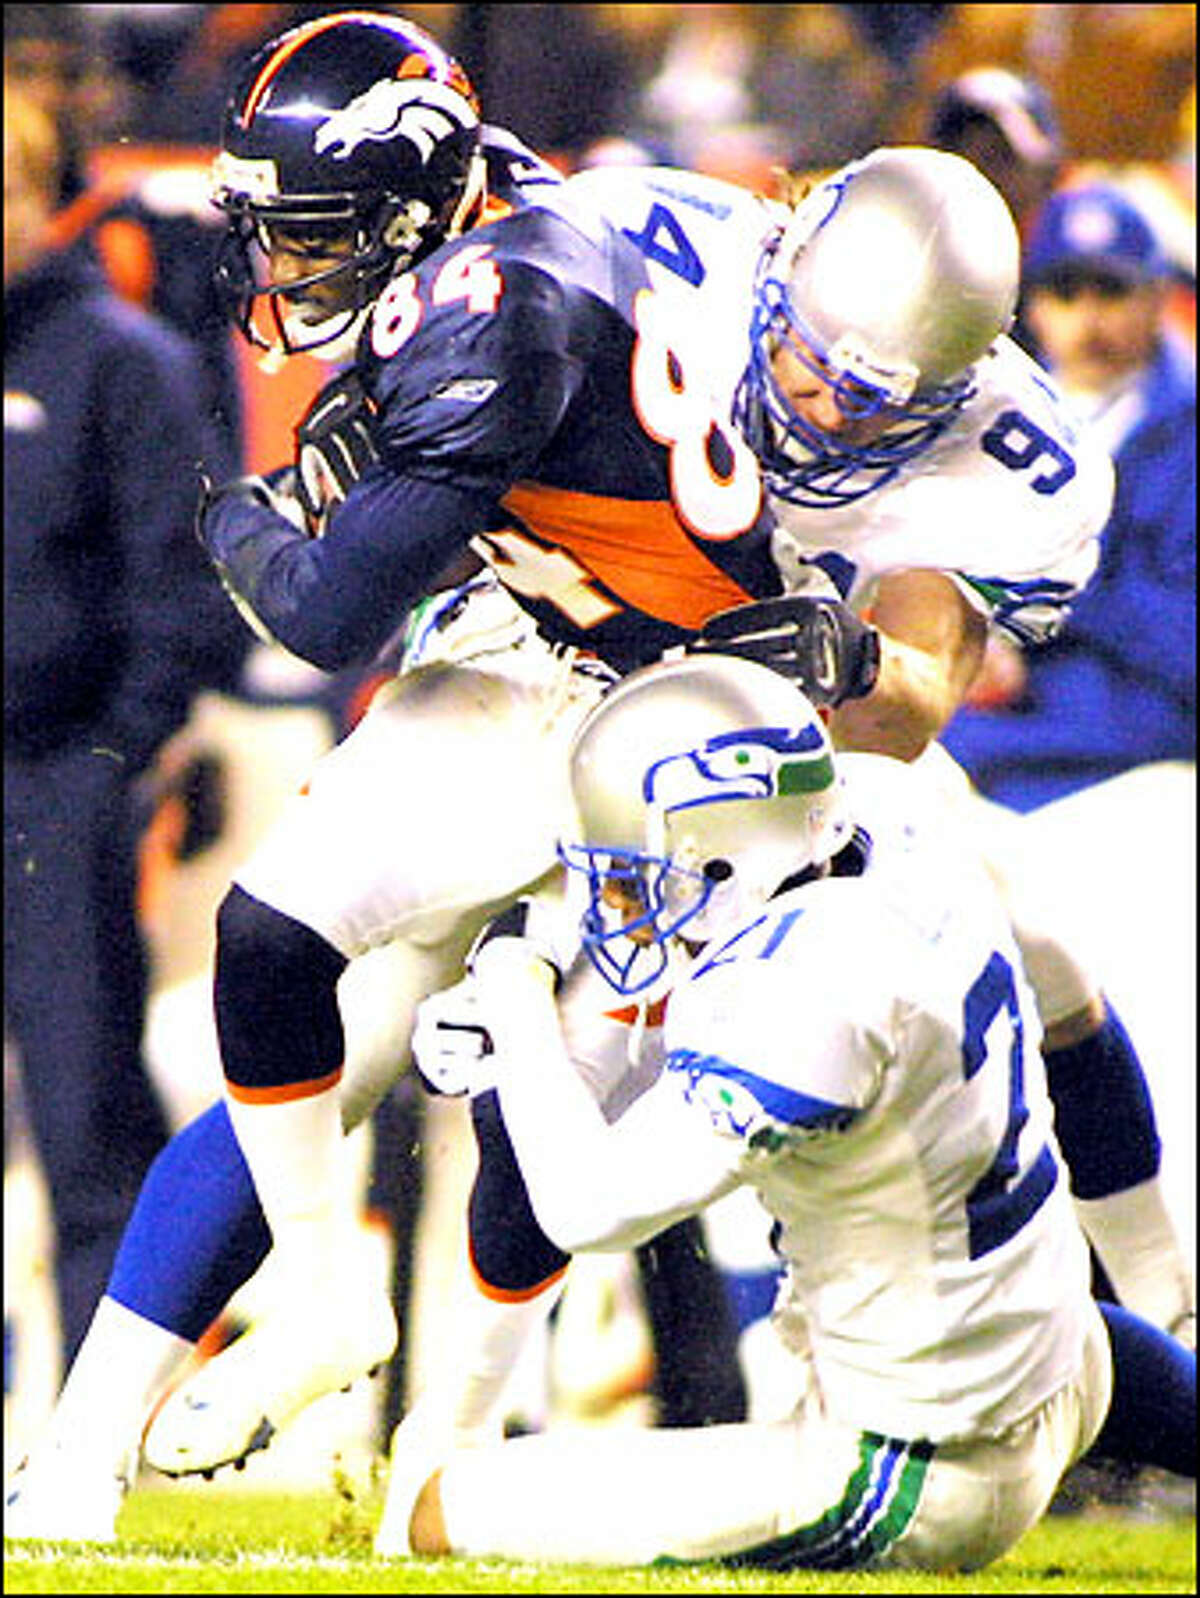 Denver's Chris Cole is tackled by Seahawks defenders Chad Brown, top, and Ken Lucas after a 12-yard reception.